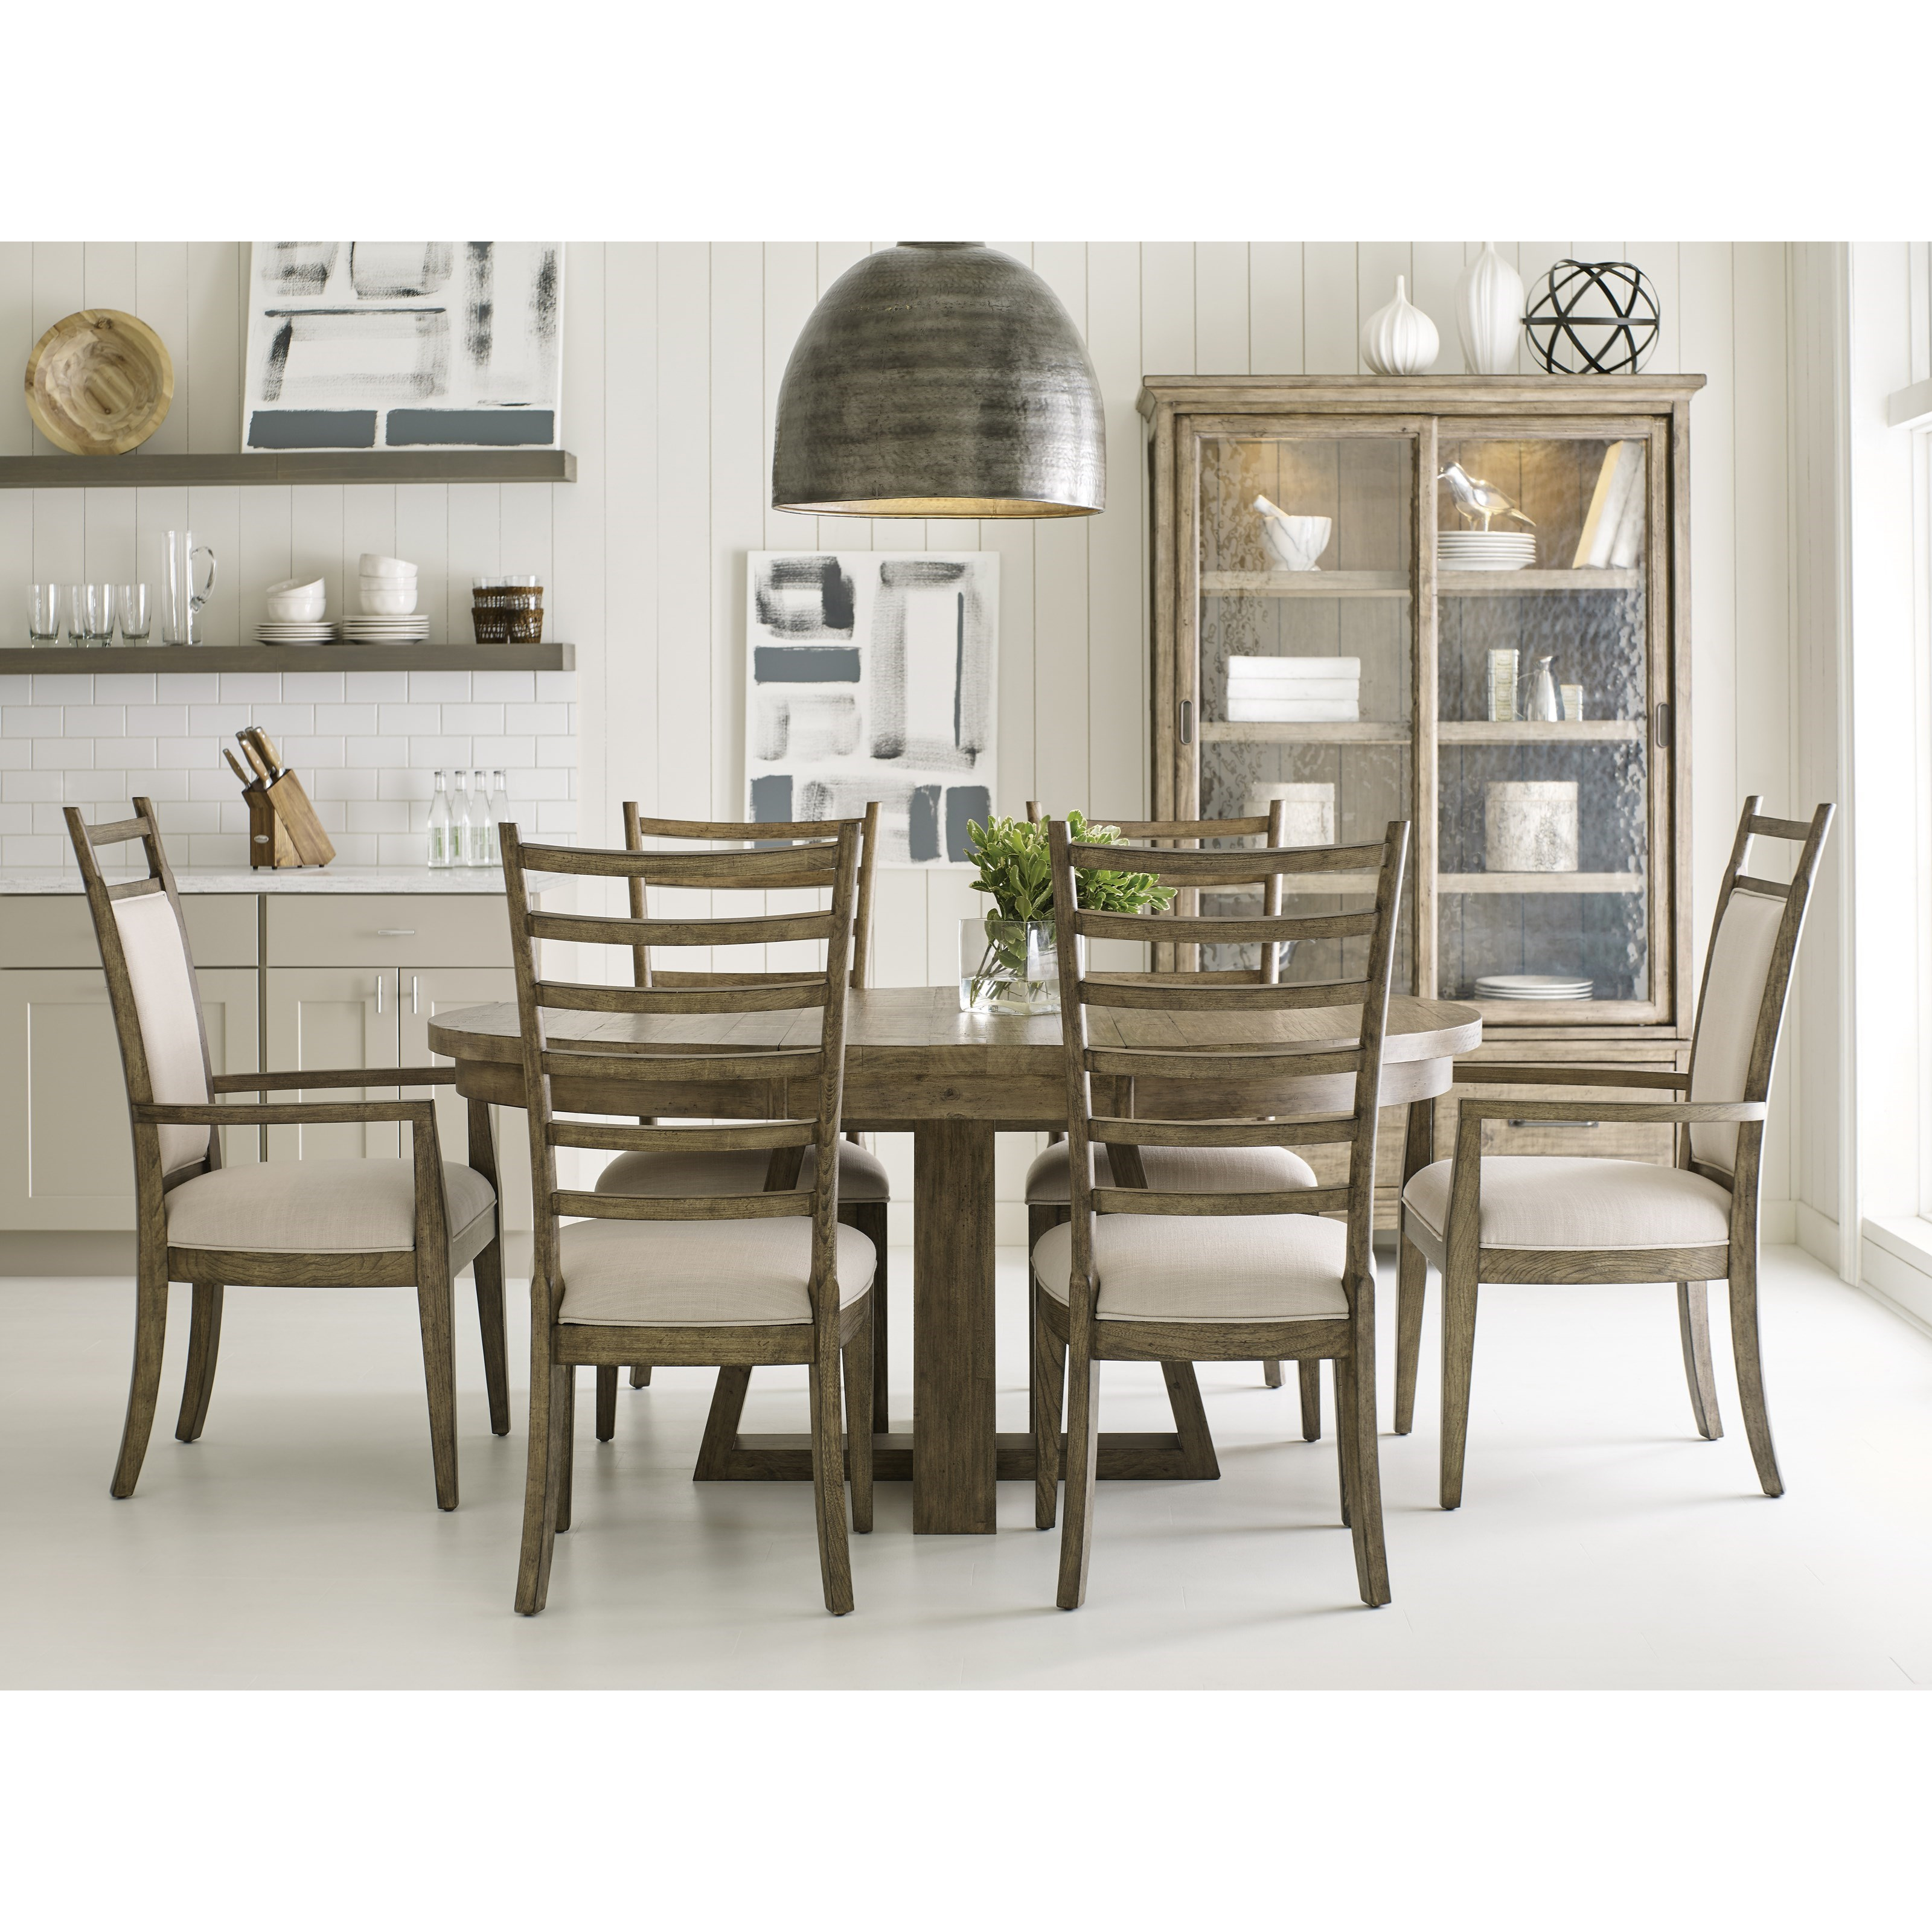 Kincaid Dining Room Set: Kincaid Furniture Plank Road Seven Piece Dining Set With Button Table And Oakley Chairs